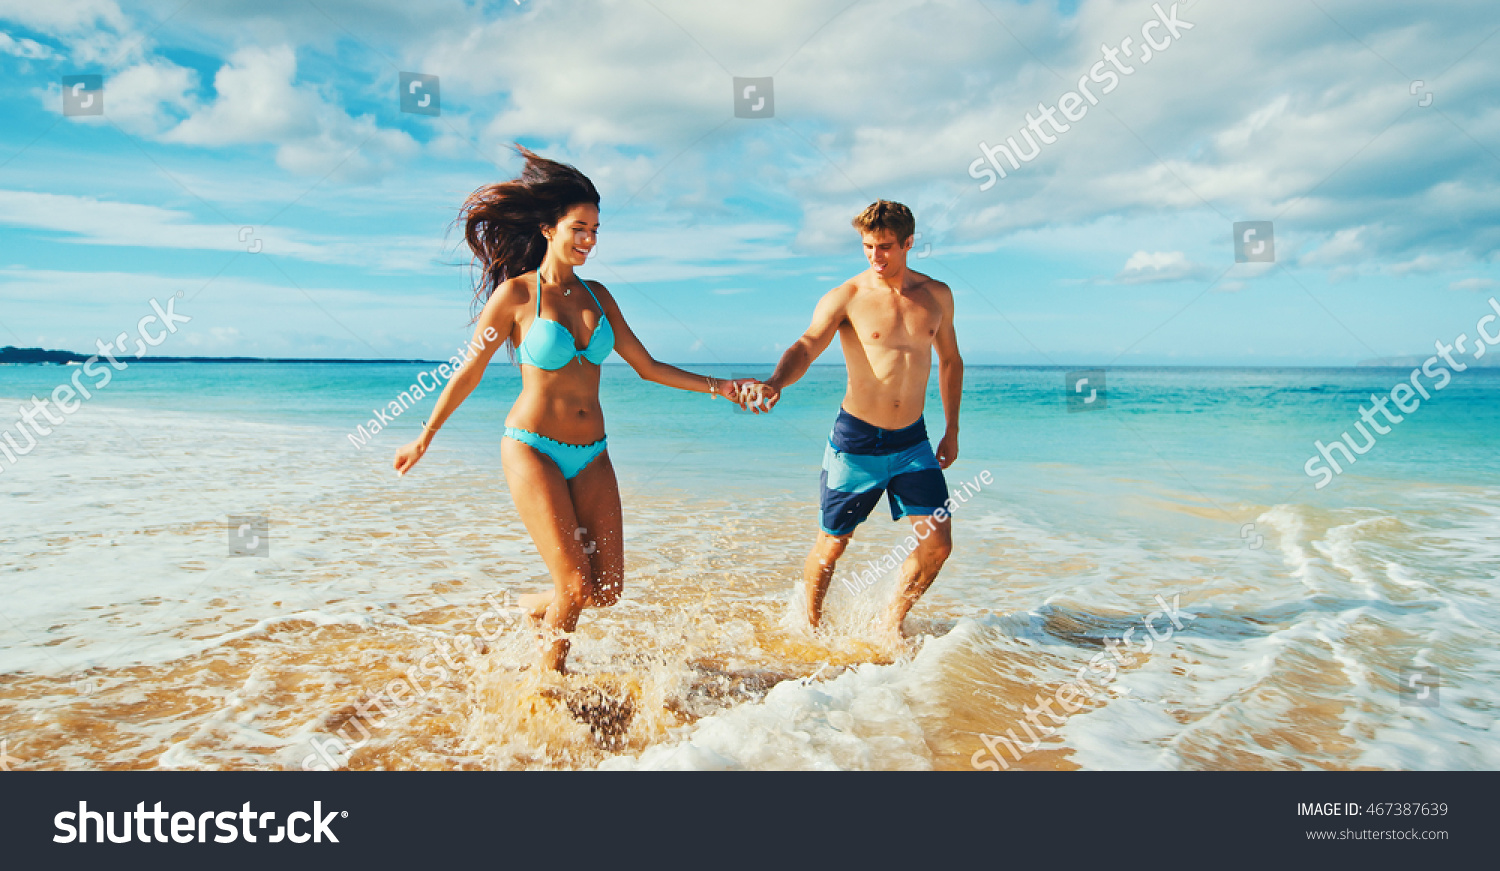 Consider, that young couple play on beach